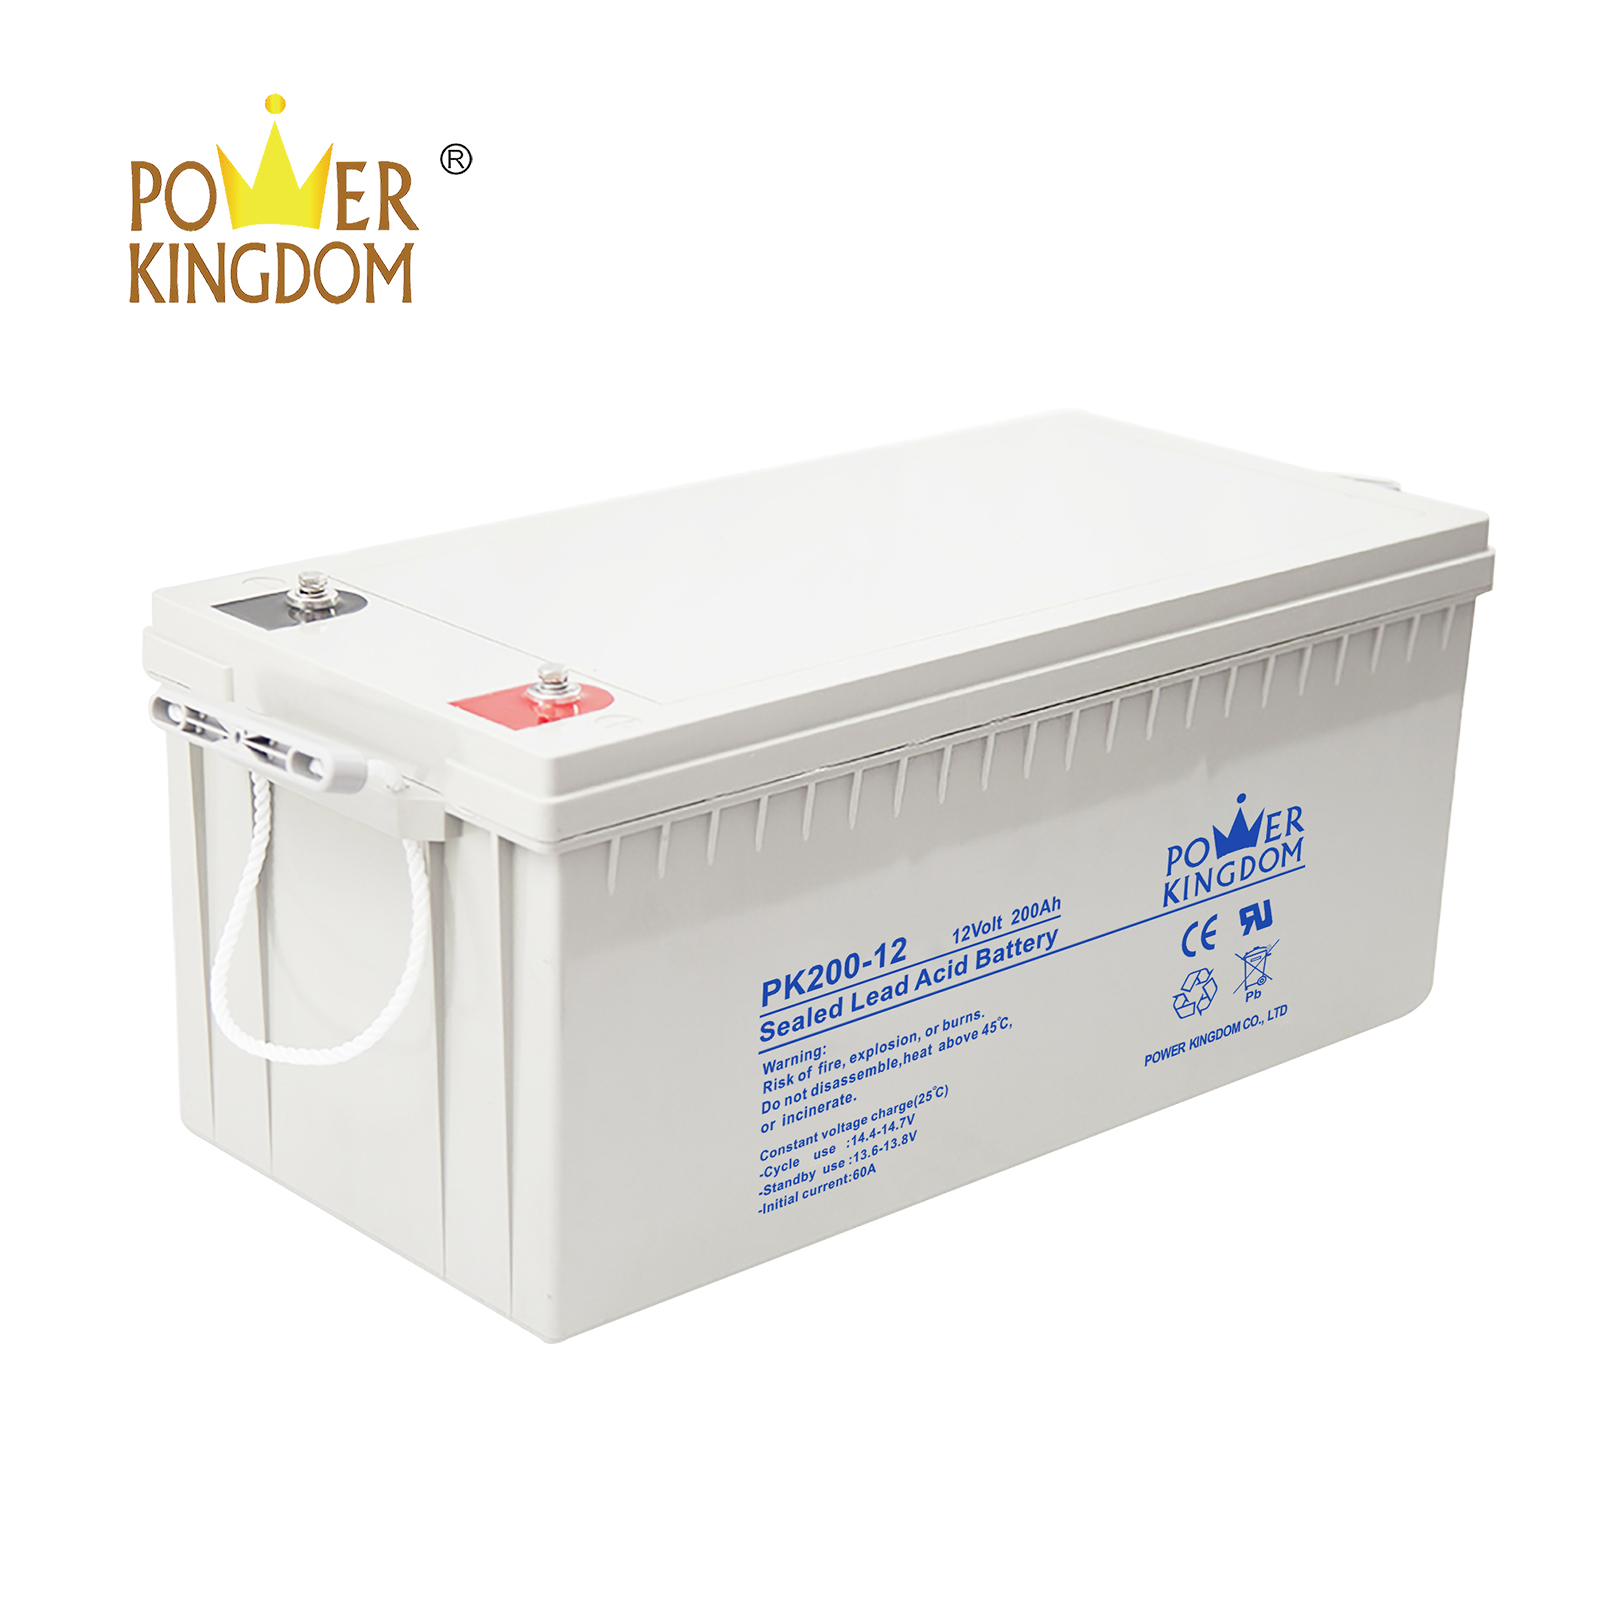 Latest 12 volt rechargeable gel cell battery factory price-3